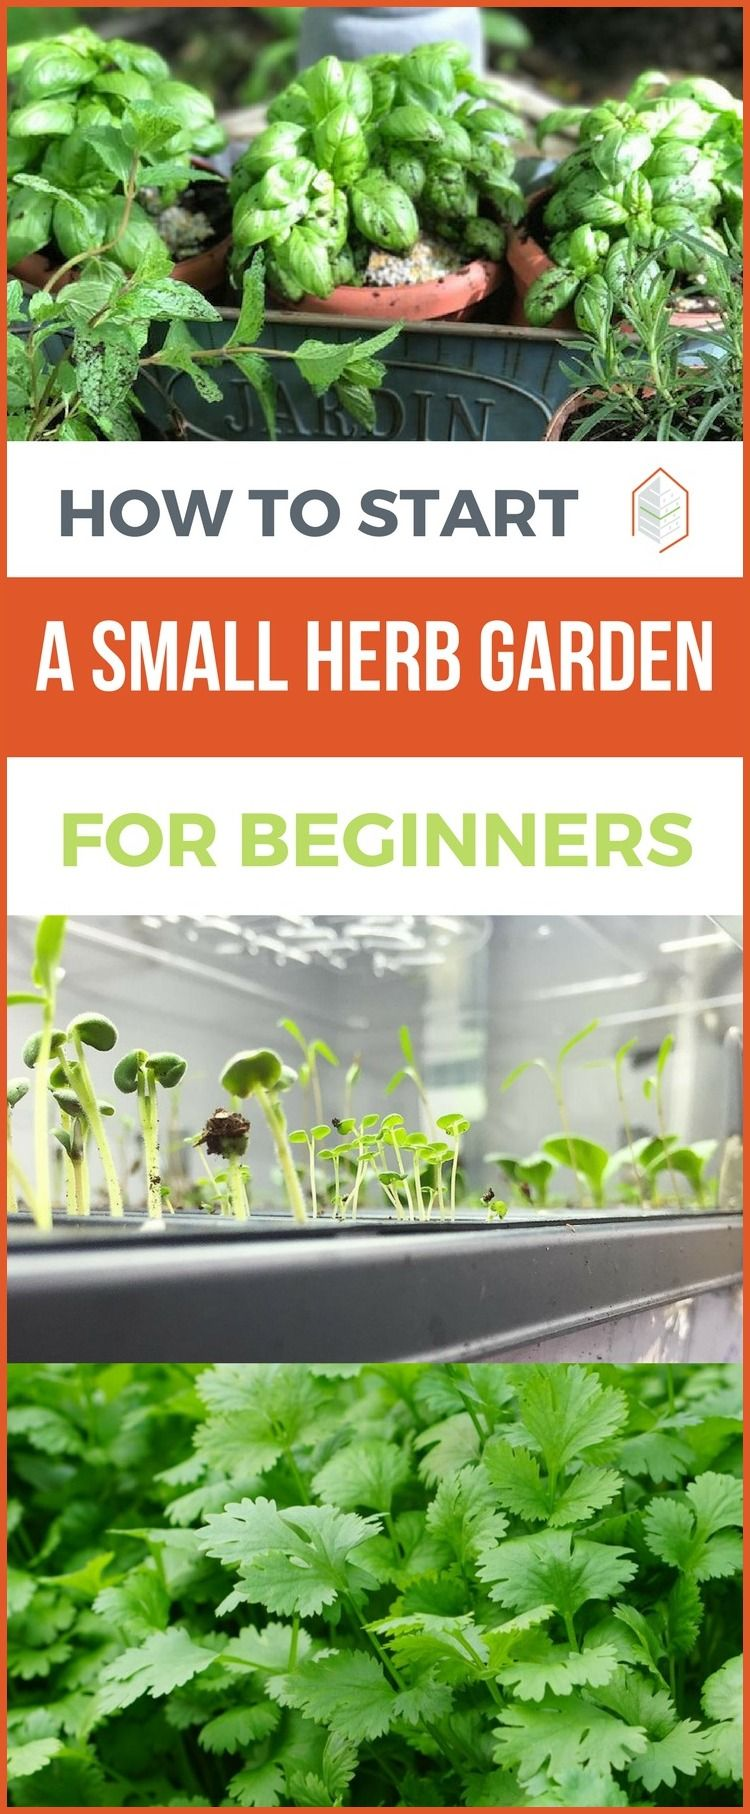 How To Start A Small Herb Garden For Beginners By UGR